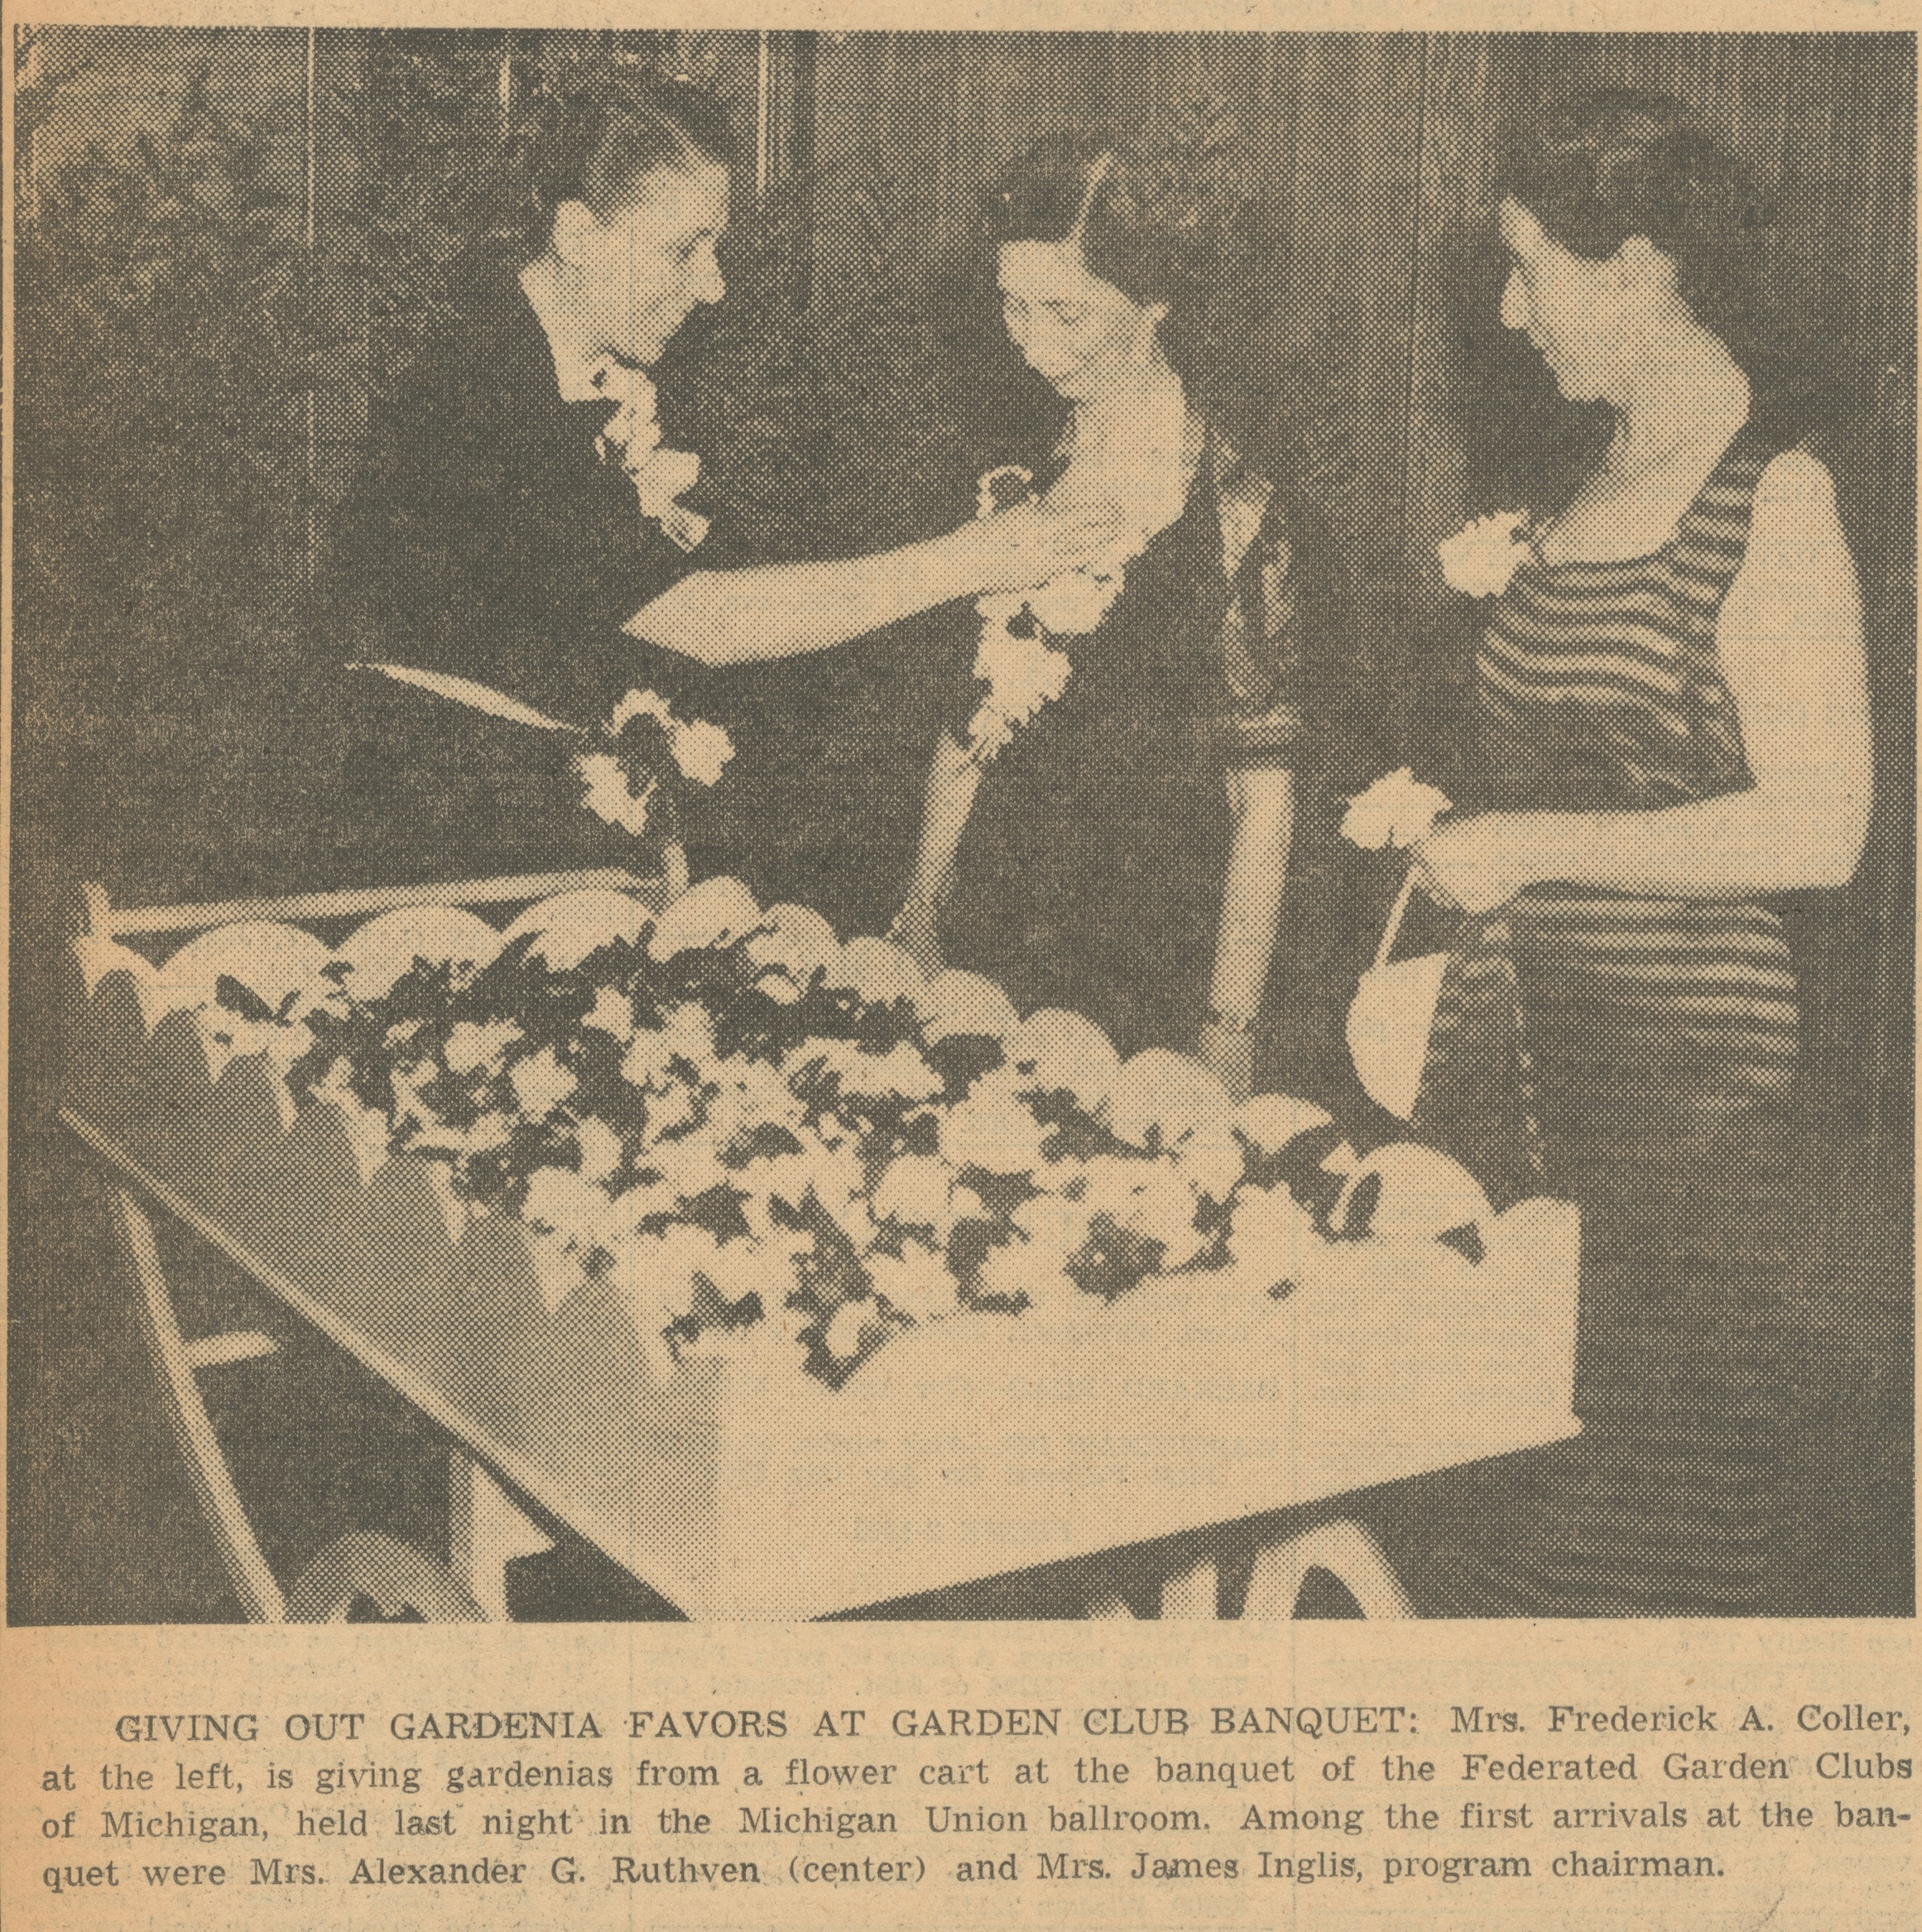 Giving Out Gardenia Favors At Garden Club Banquet image